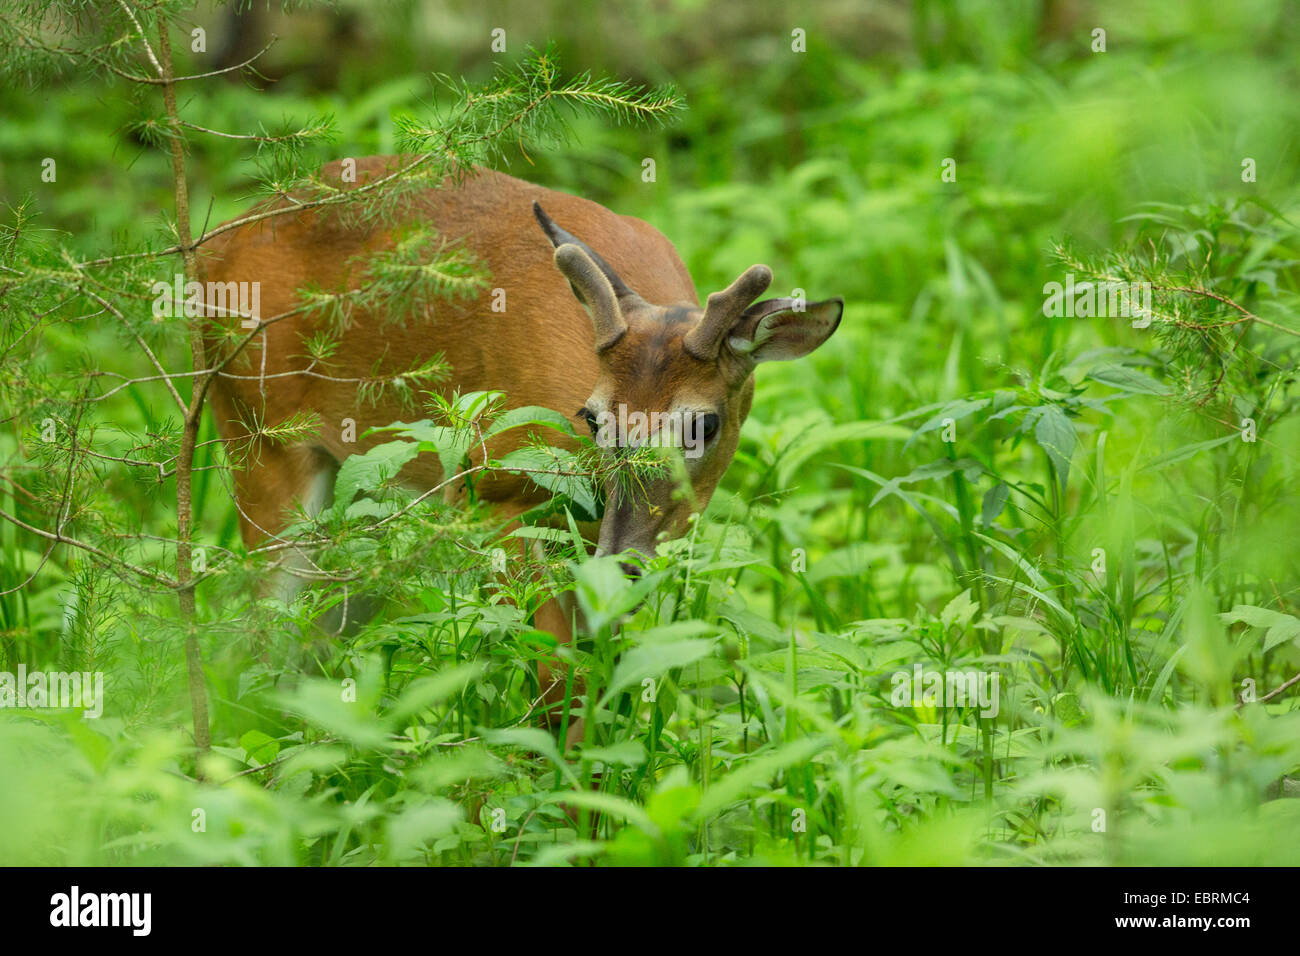 White-tailed deer (Odocoileus virginianus), browsing between herbaceous perennials, USA, Tennessee, Great Smoky - Stock Image